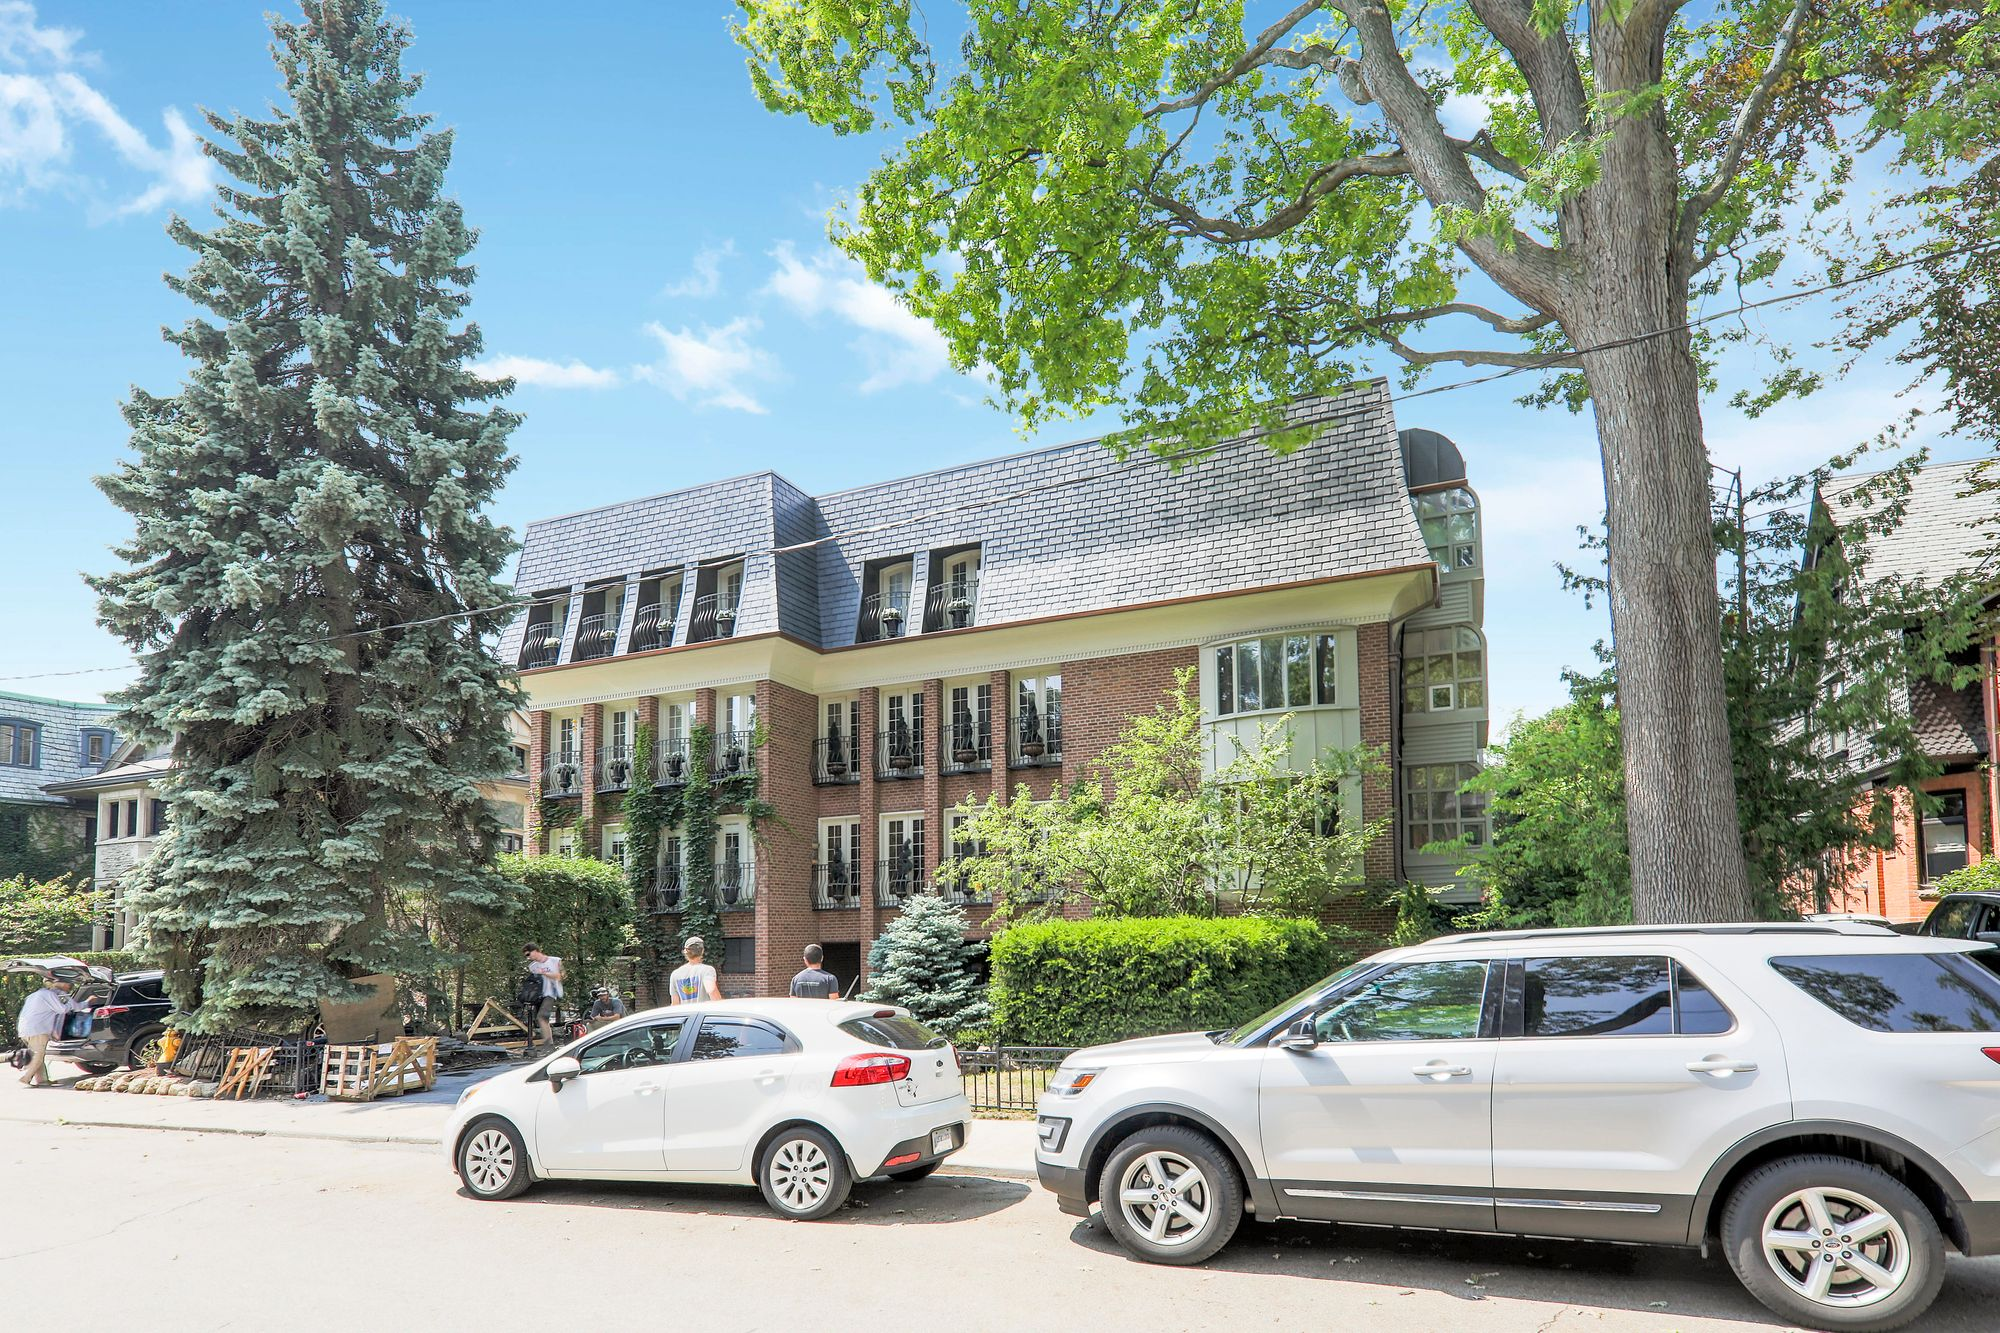 8 Hawthorn Ave. This condo townhouse at 8 Hawthorn Avenue Condos is located in  Midtown, Toronto - image #1 of 4 by Strata.ca